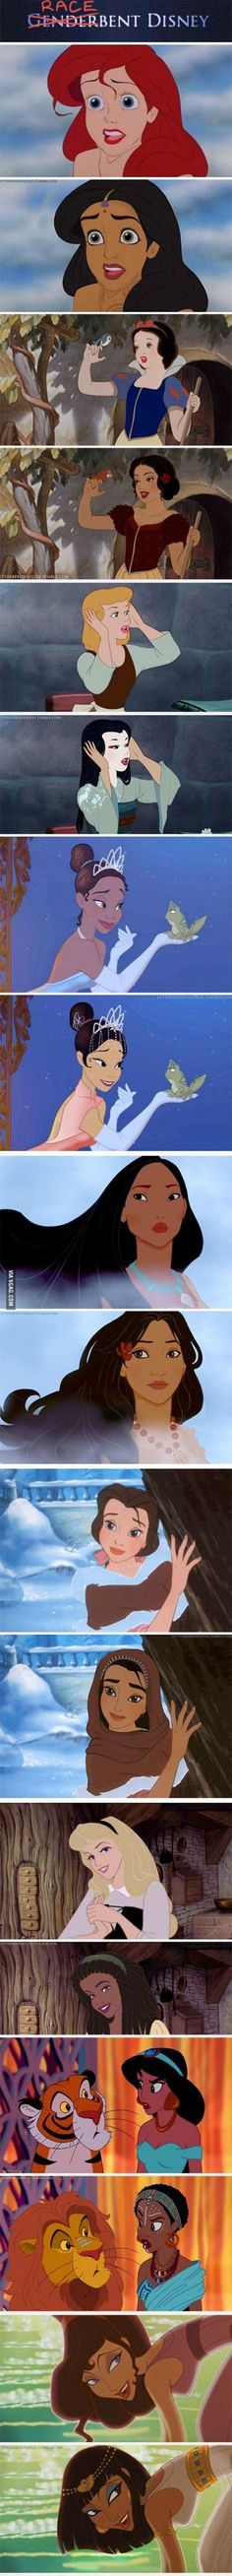 Other-Belle looks a bit like Jasmine. And I like how grown-up Simba makes an appearance.